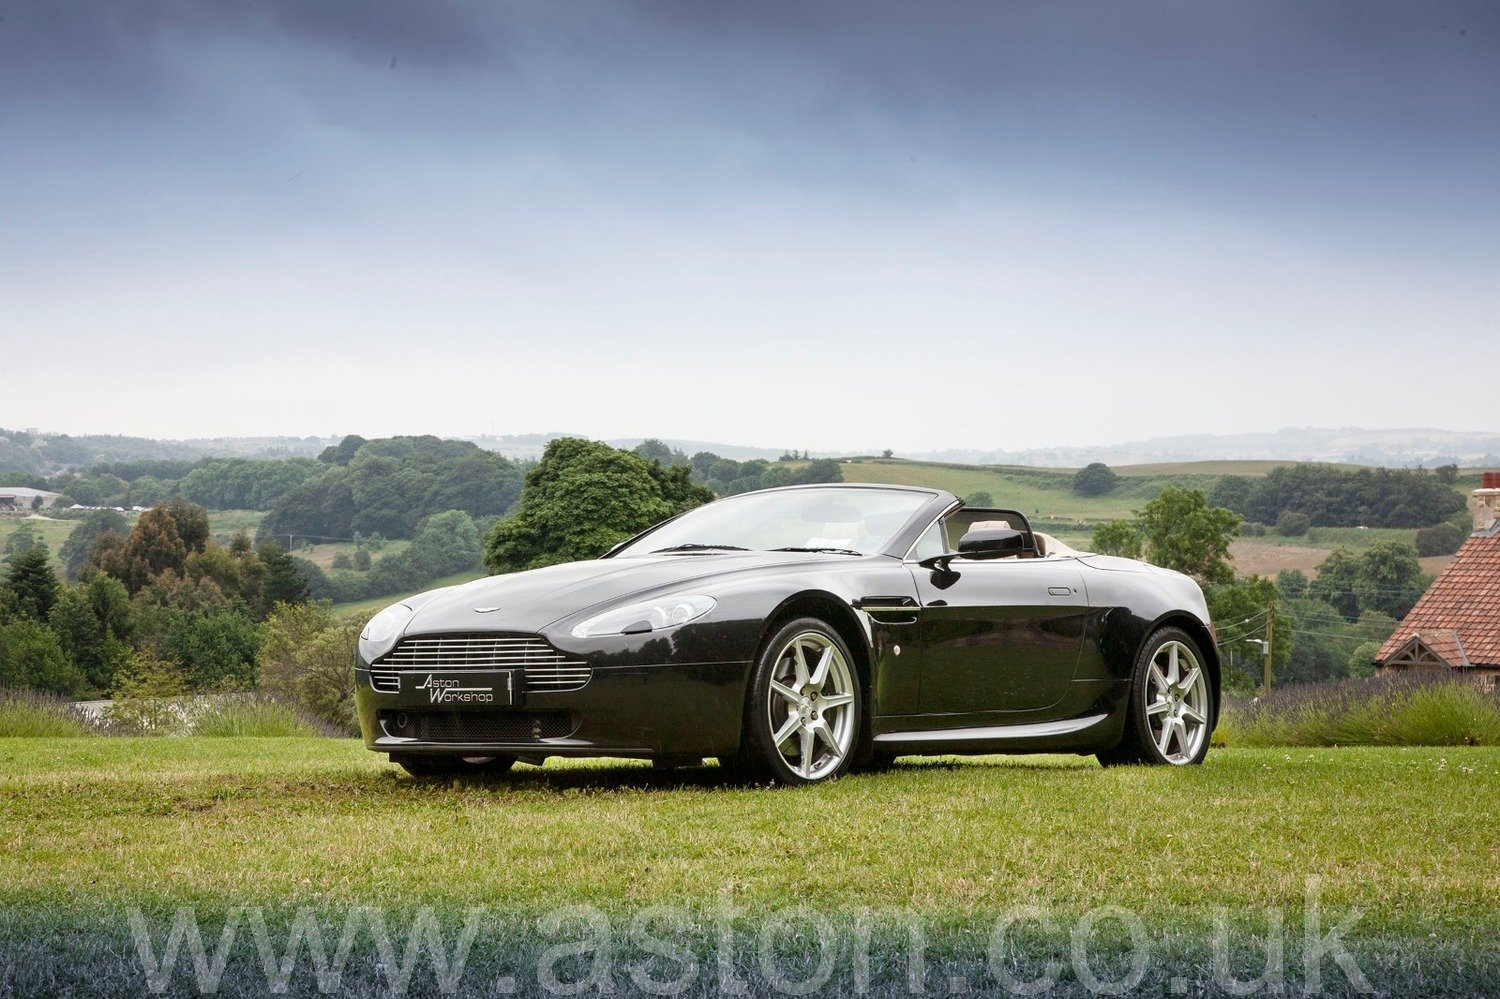 2007 Aston Martin V8 Vantage 4.3 Roadster Manual -New Clutch SOLD (picture 1 of 6)